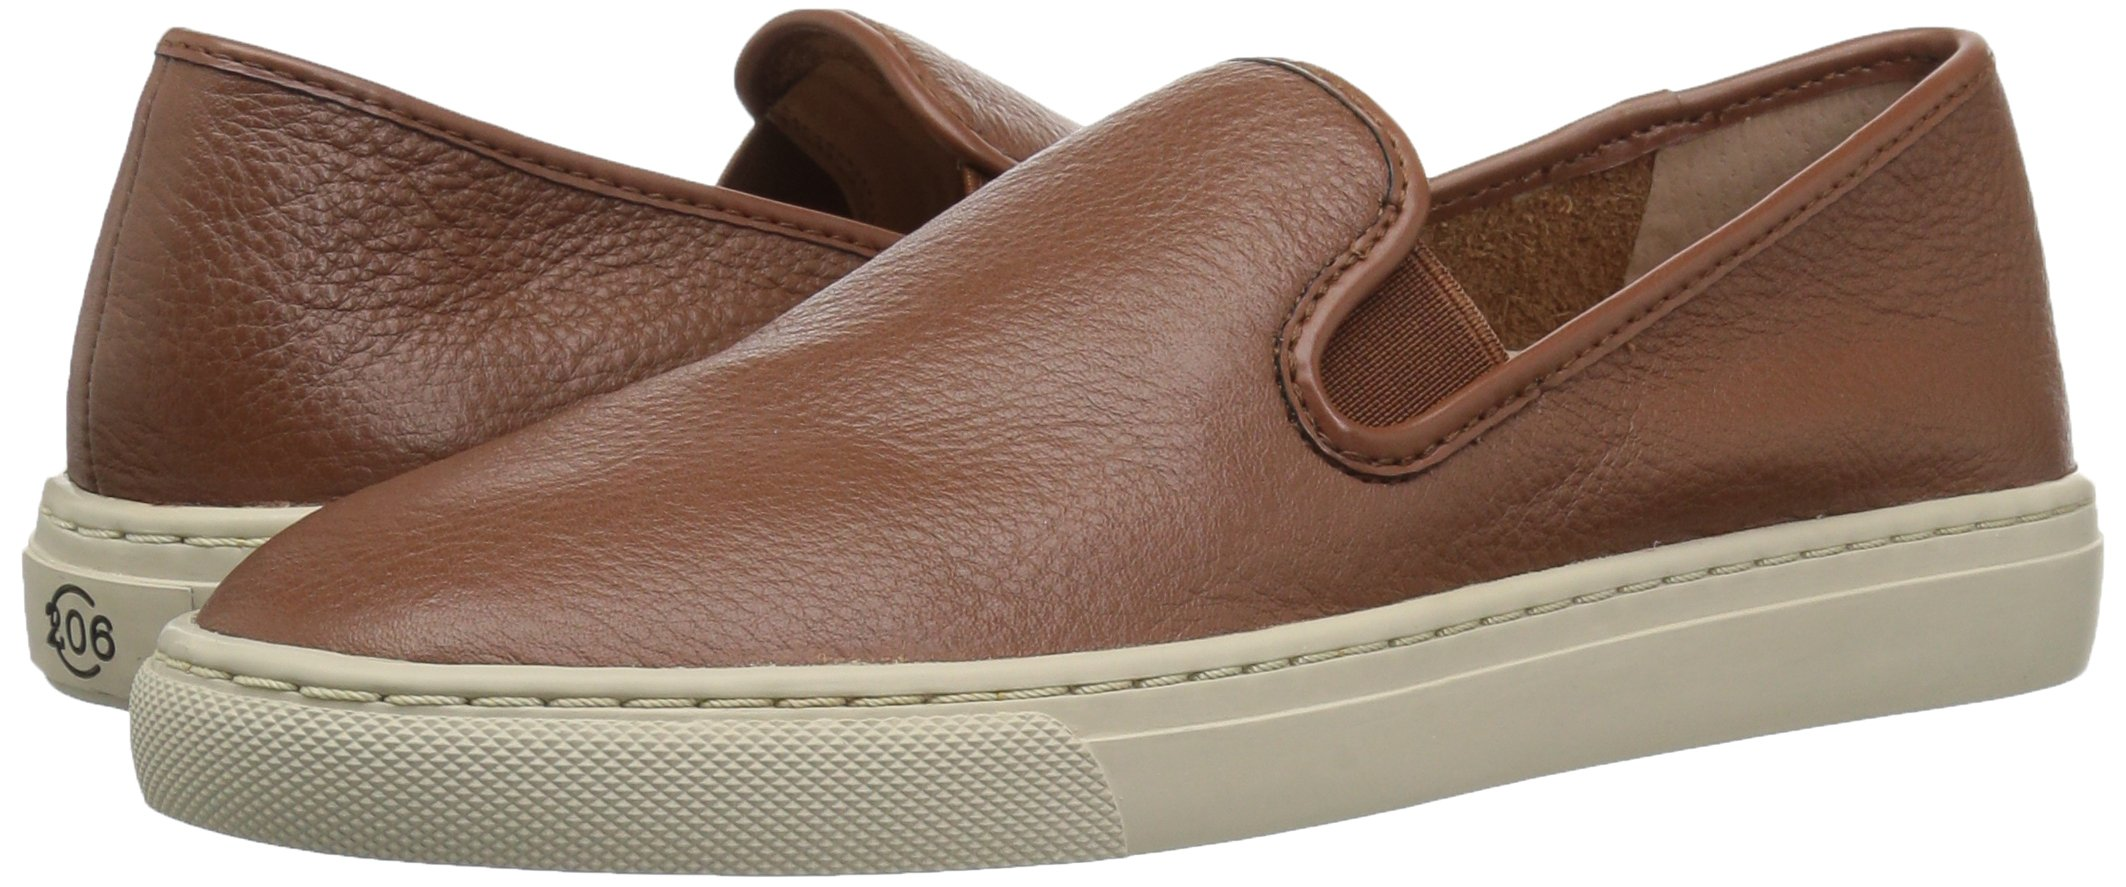 206 Collective Women's Cooper Perforated Slip-on Fashion Sneaker, Cognac Leather, 8.5 B US by 206 Collective (Image #5)